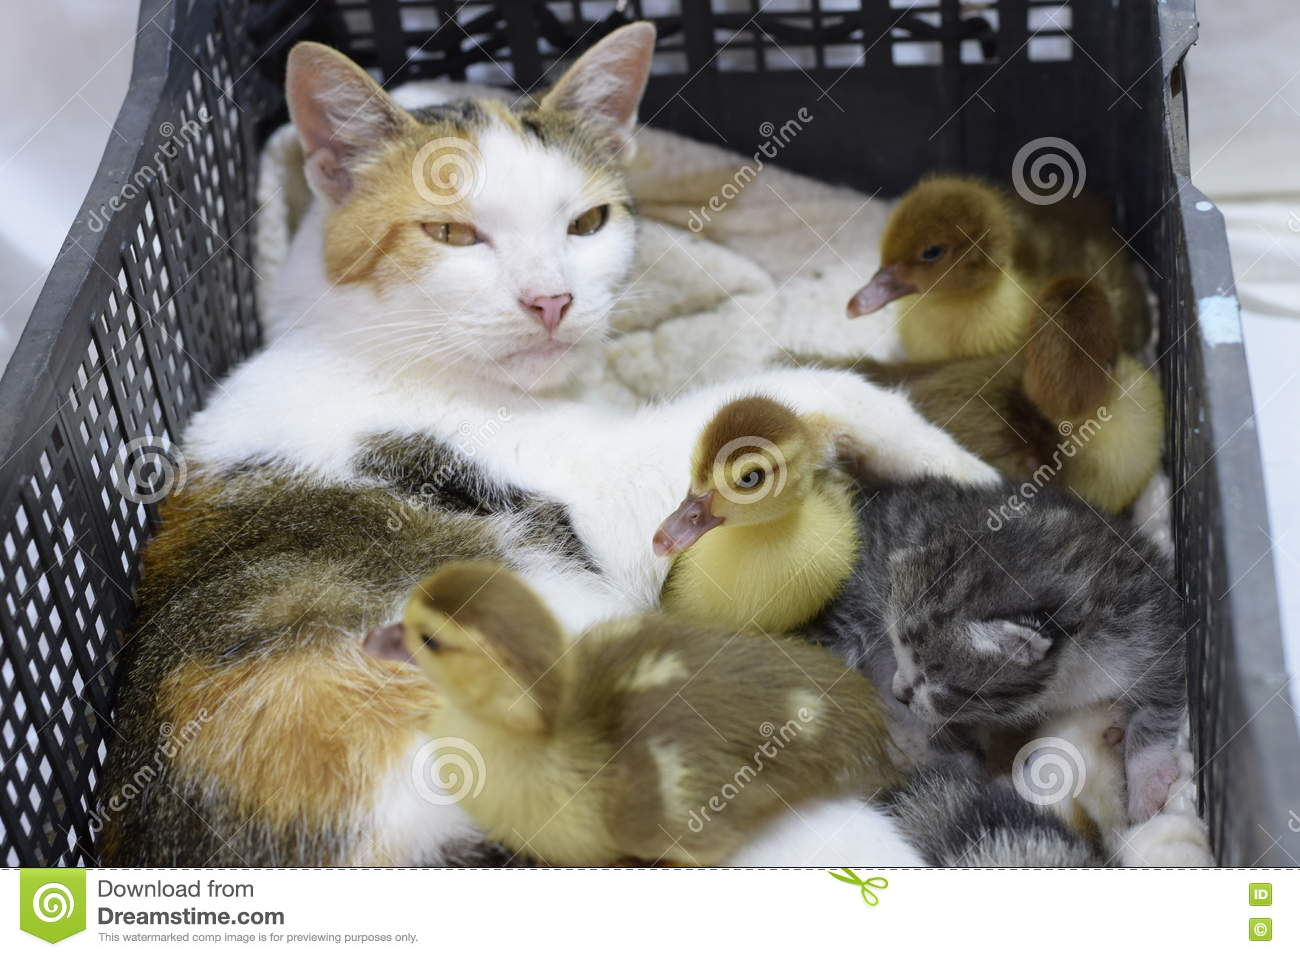 Kitten box of ducklings